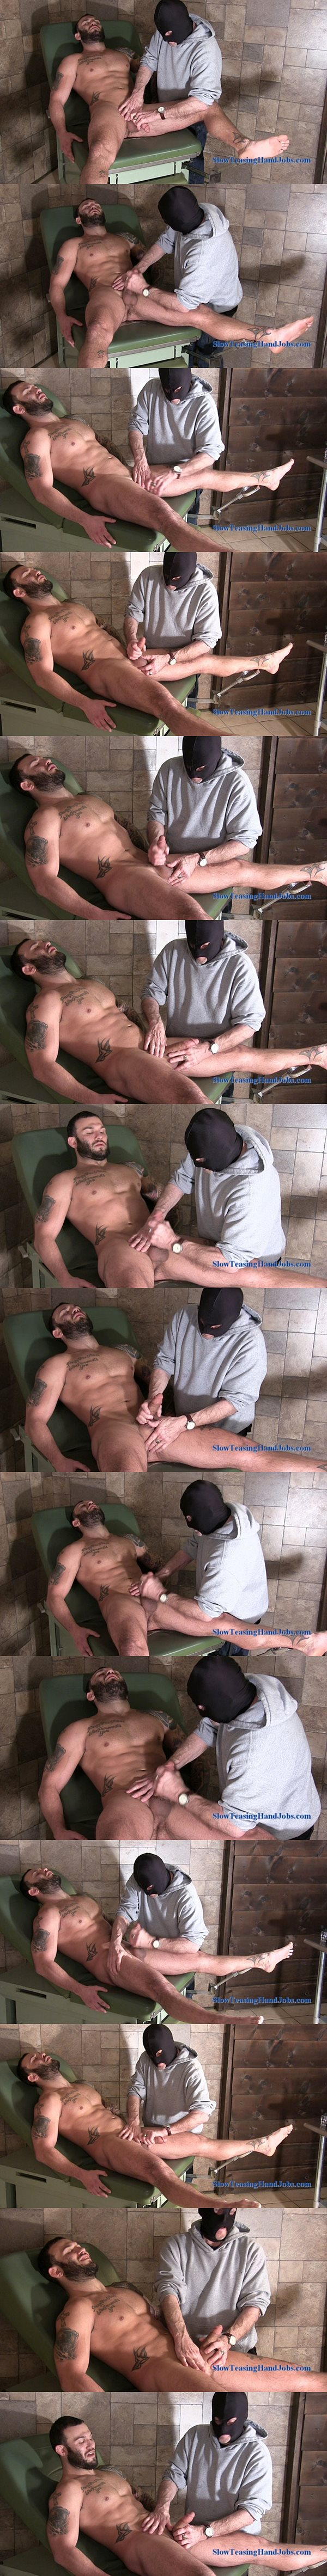 Masculine hunk Tony gets jerked off by the mystery edger at Slowteasinghandjobs 02